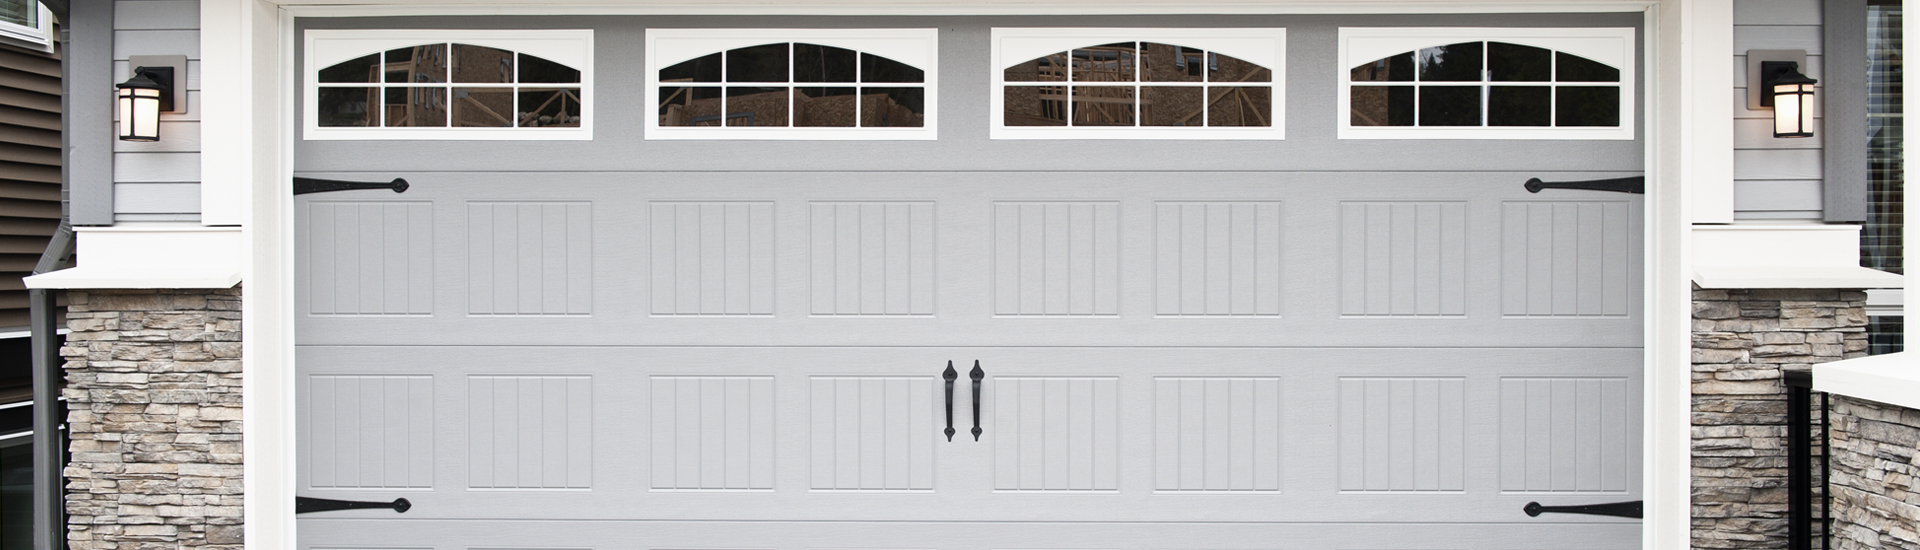 Allied Slider garage door